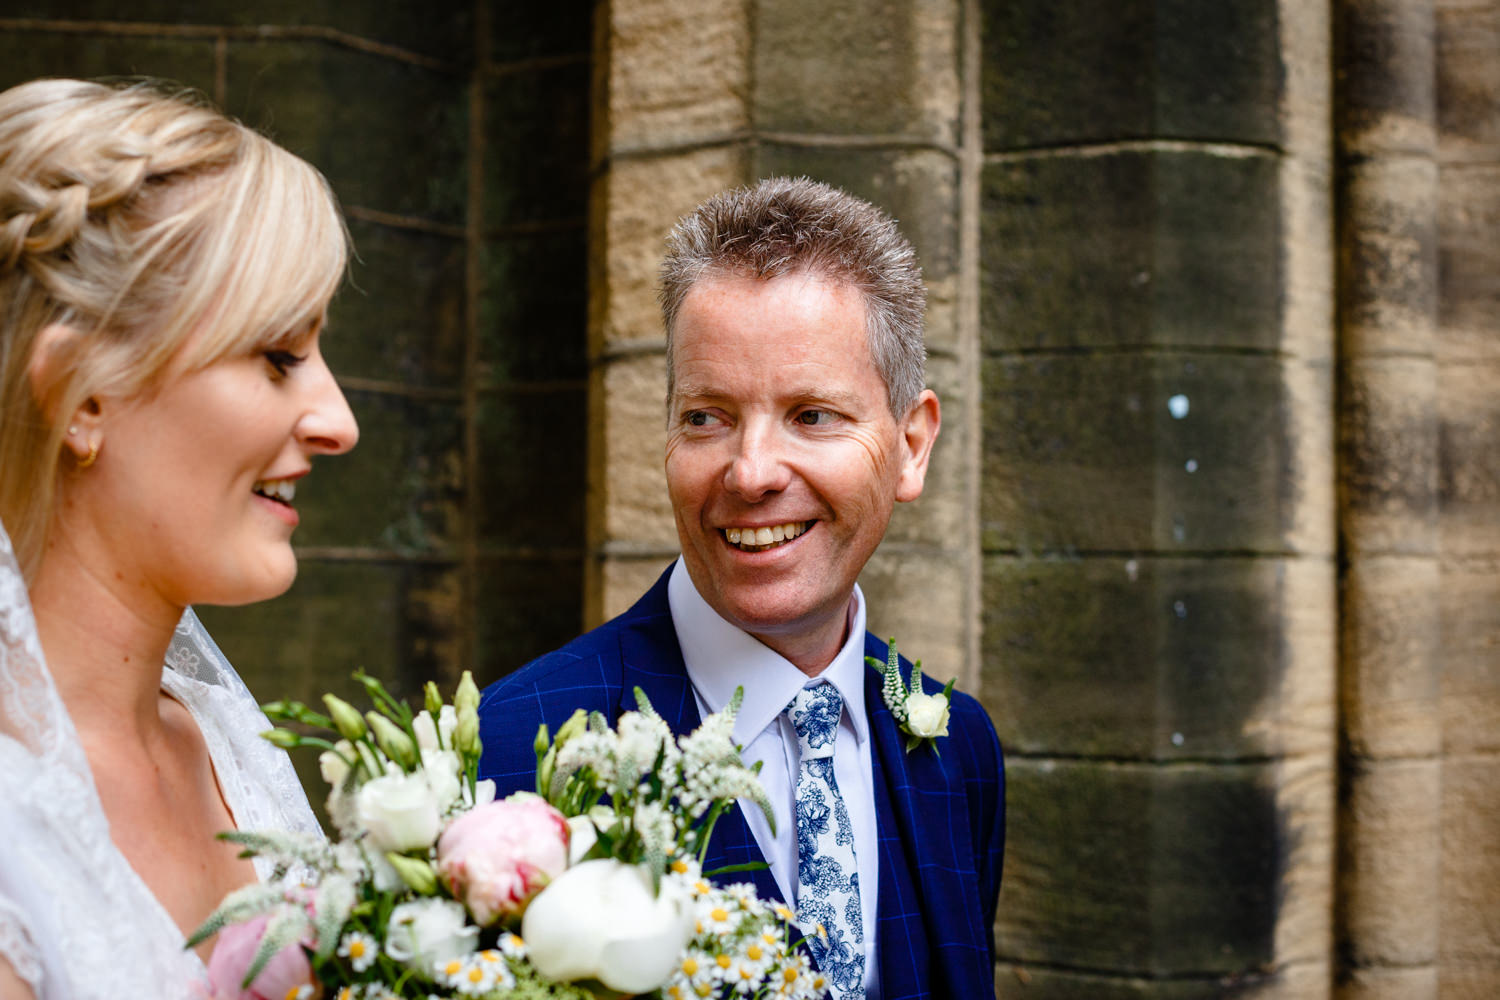 Katie-Luke-Huddersfield-wedding-photographer-Katie-Luke022.jpg